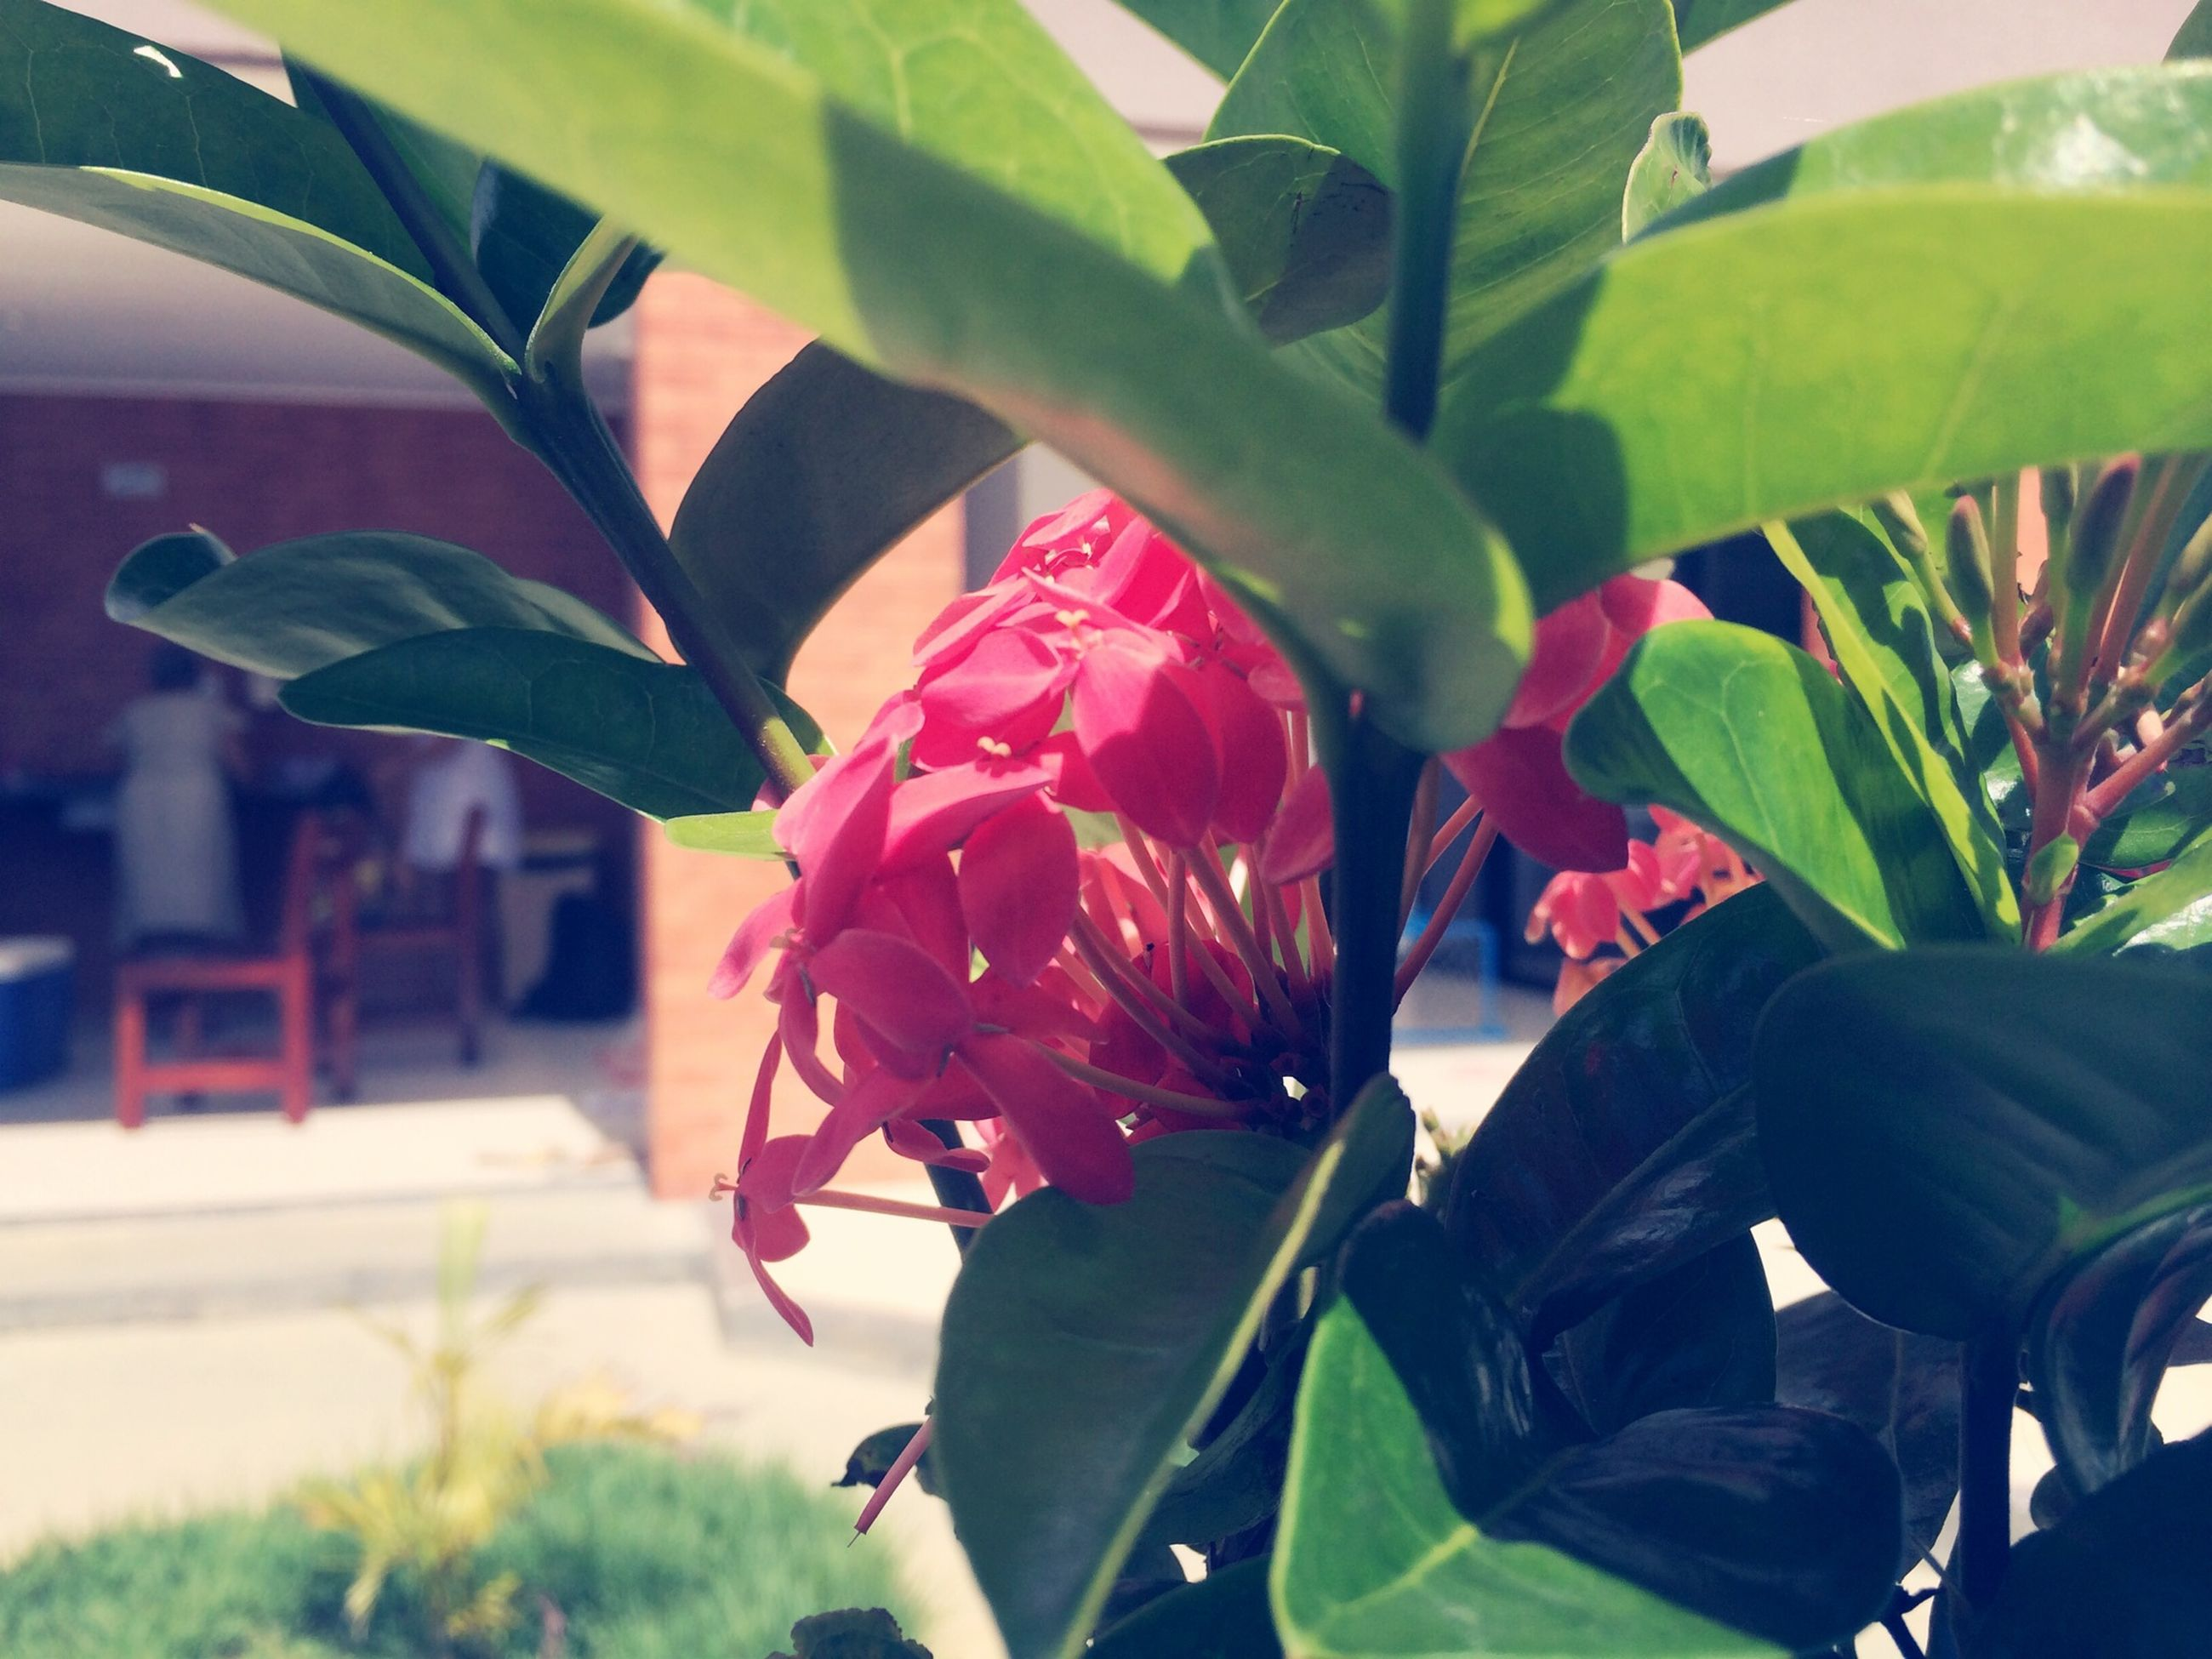 flower, petal, growth, leaf, freshness, fragility, flower head, beauty in nature, plant, pink color, close-up, focus on foreground, nature, blooming, single flower, day, in bloom, green color, park - man made space, sunlight